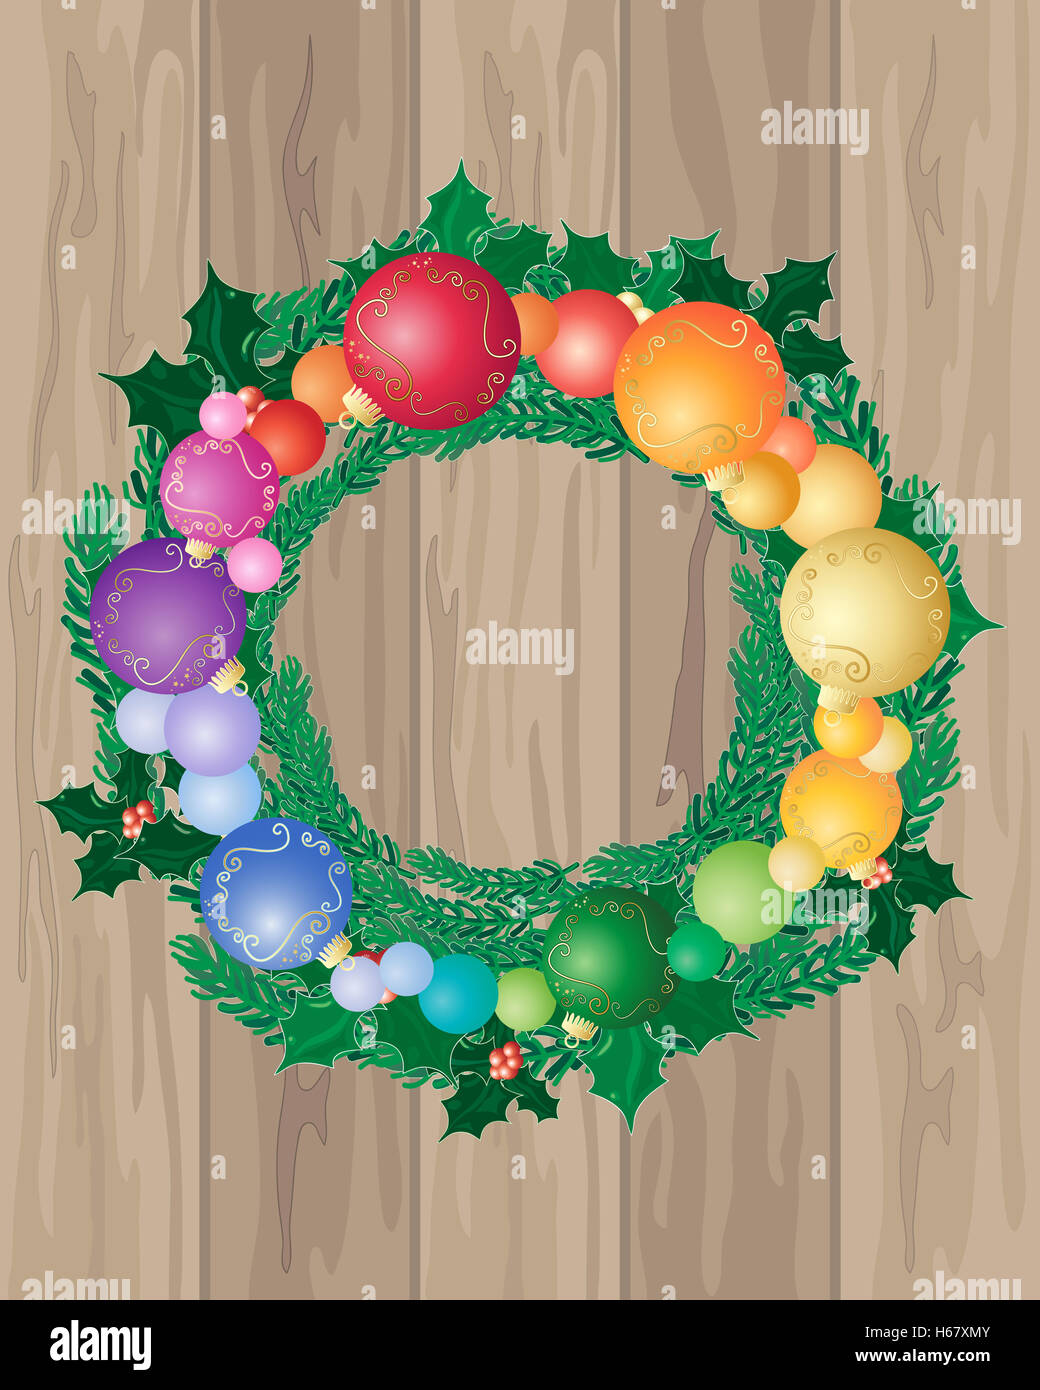 an illustration of wooden floor boards with a festive Christmas wreath decorated with colorful baubles and holly Stock Photo